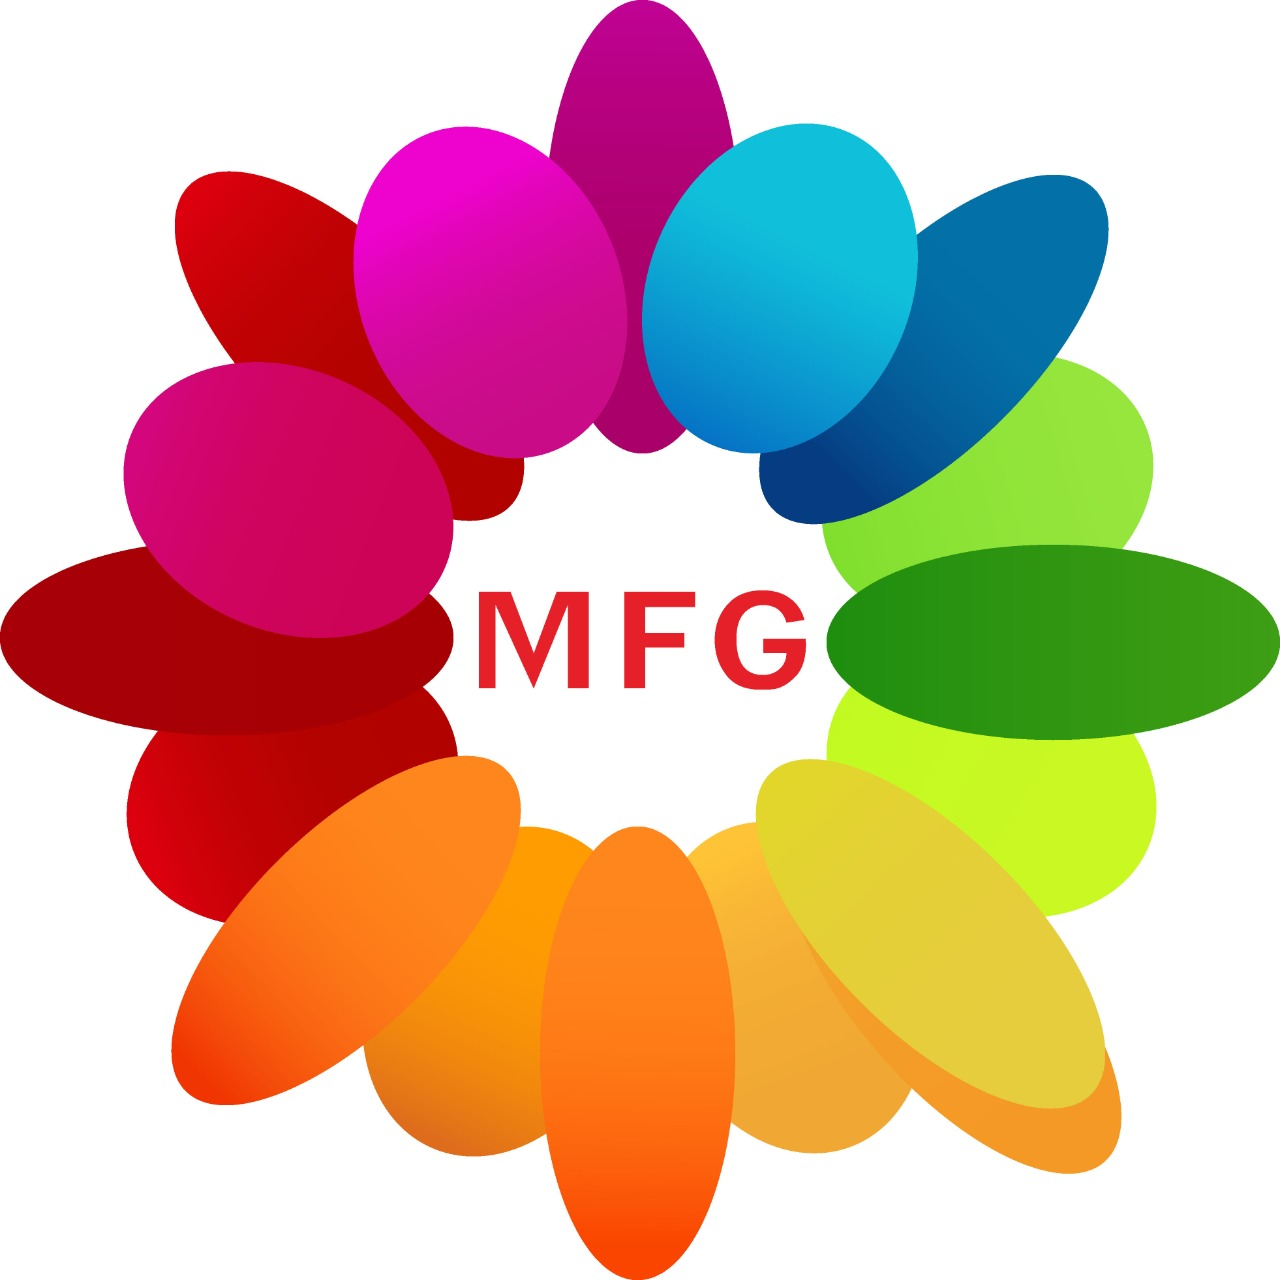 Blue orchids and white carnations exotic arrangement